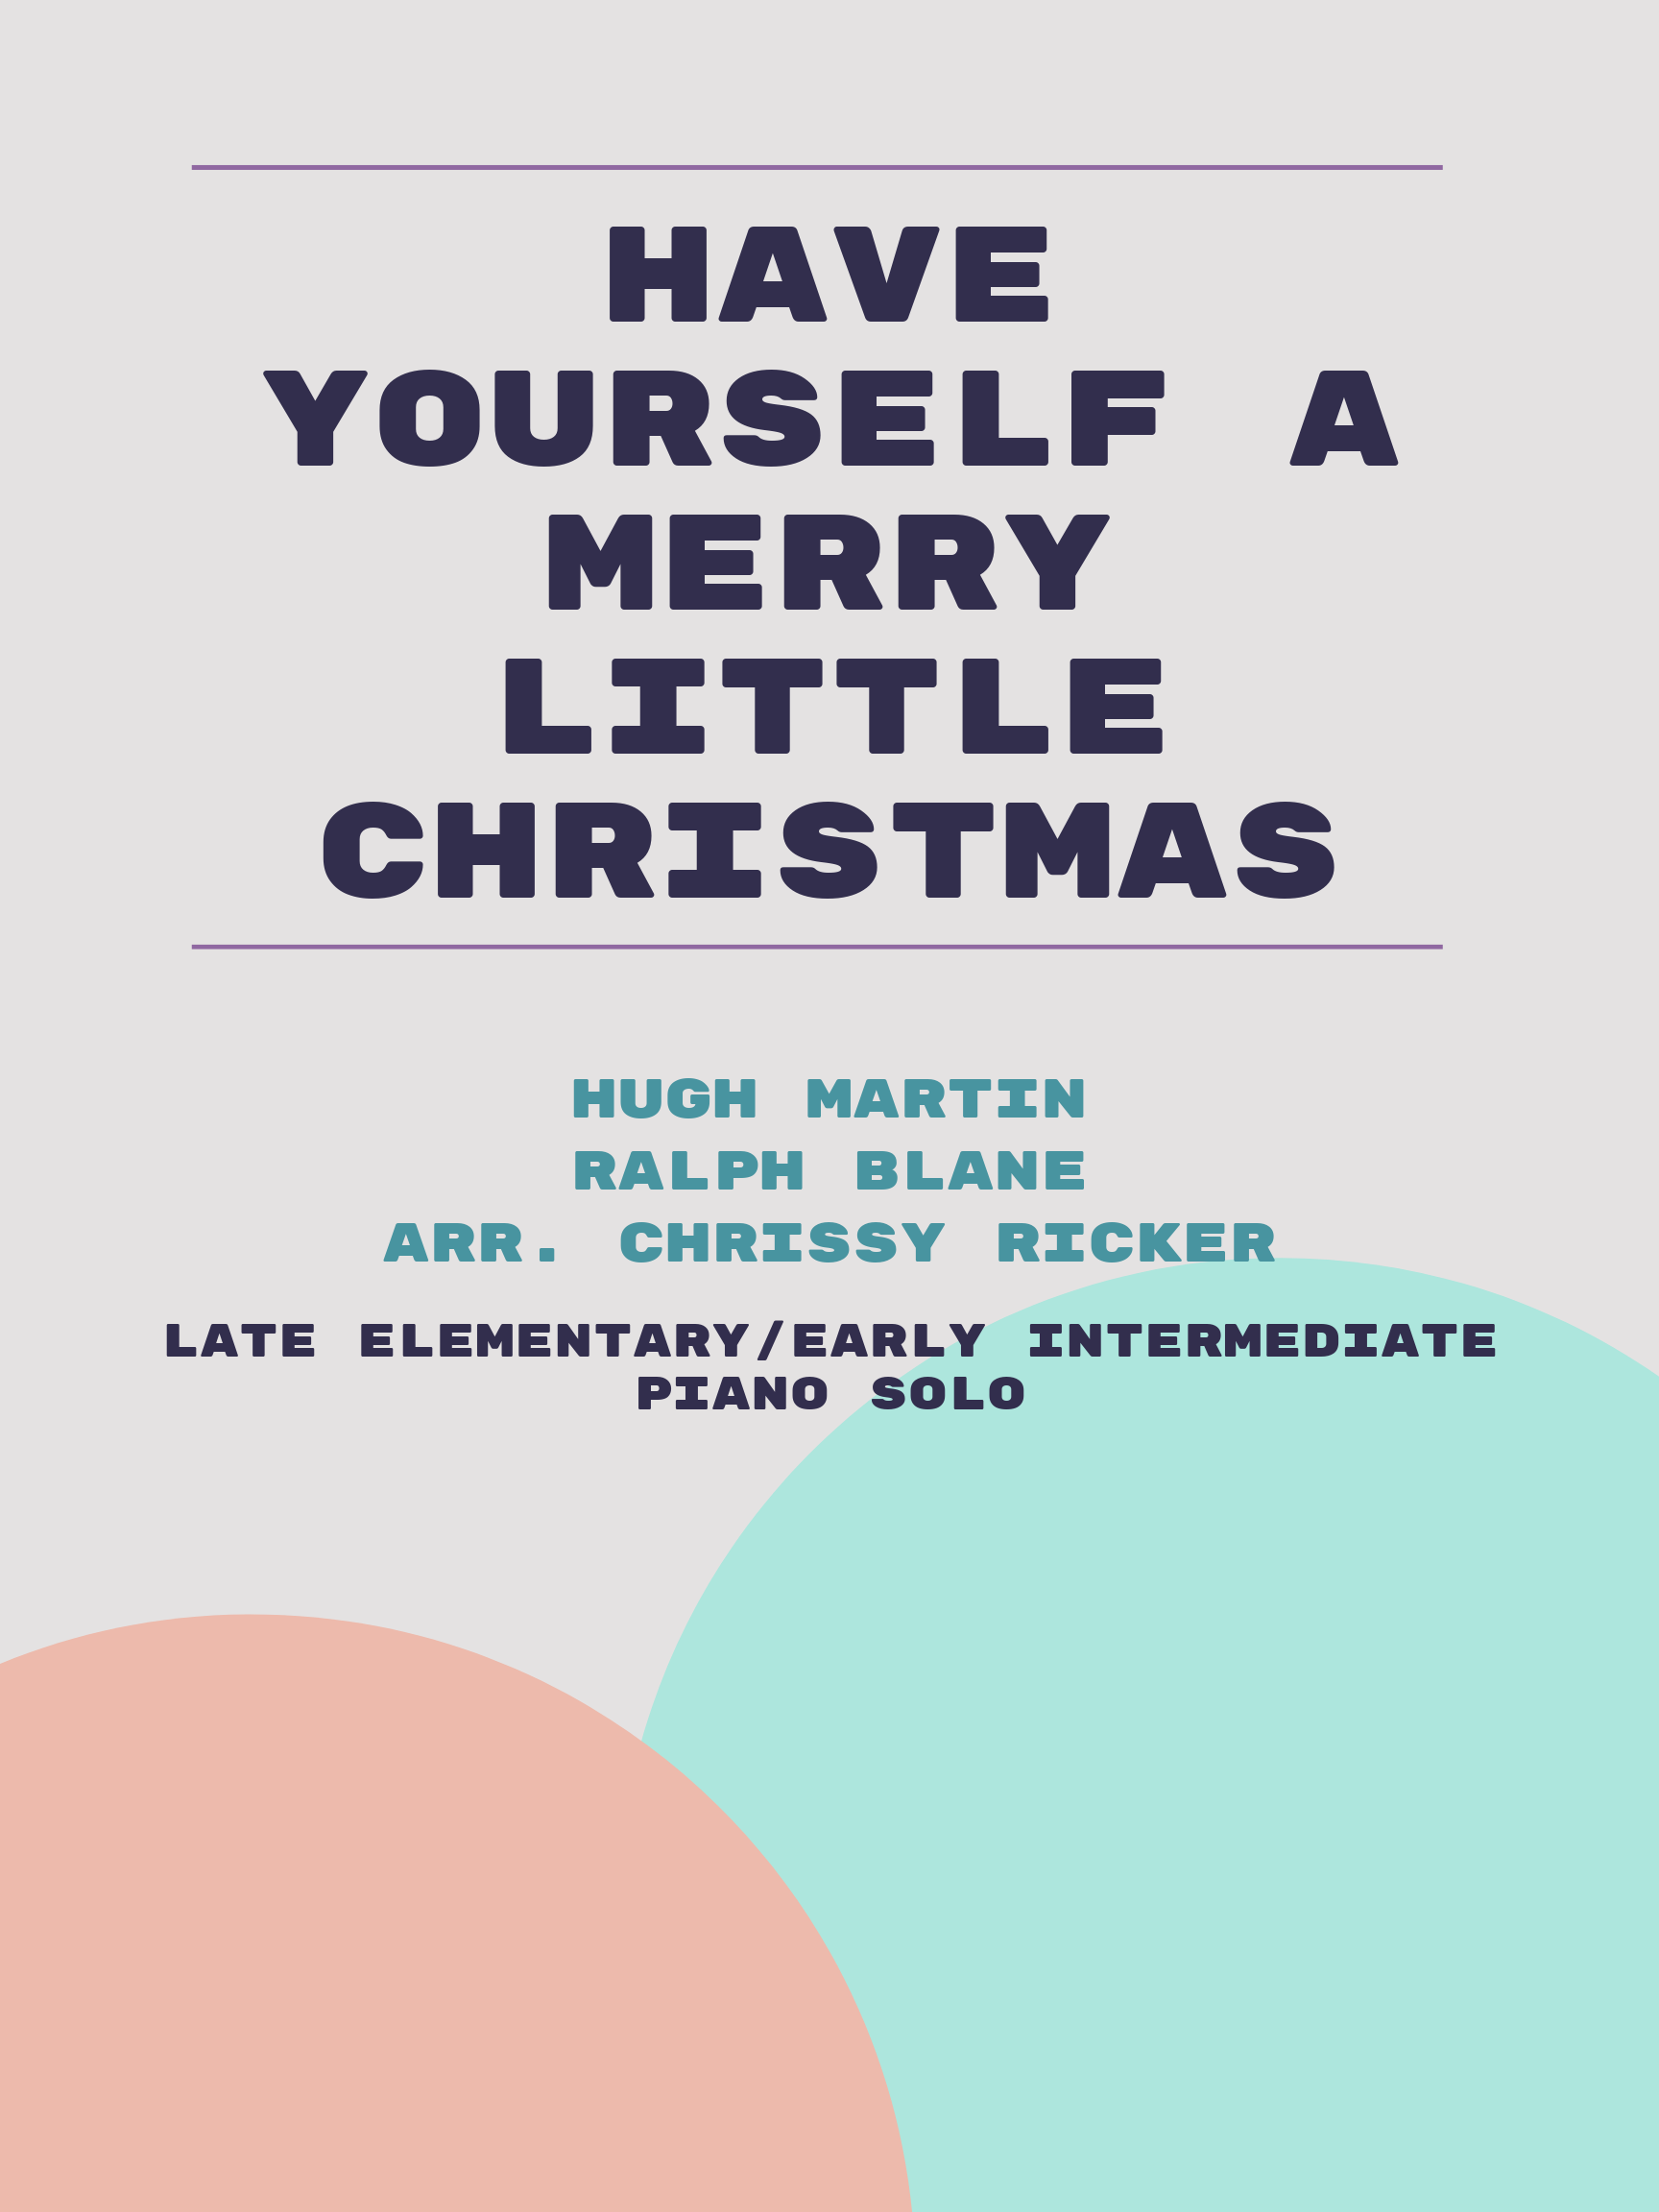 Have Yourself a Merry Little Christmas by Hugh Martin, Ralph Blane